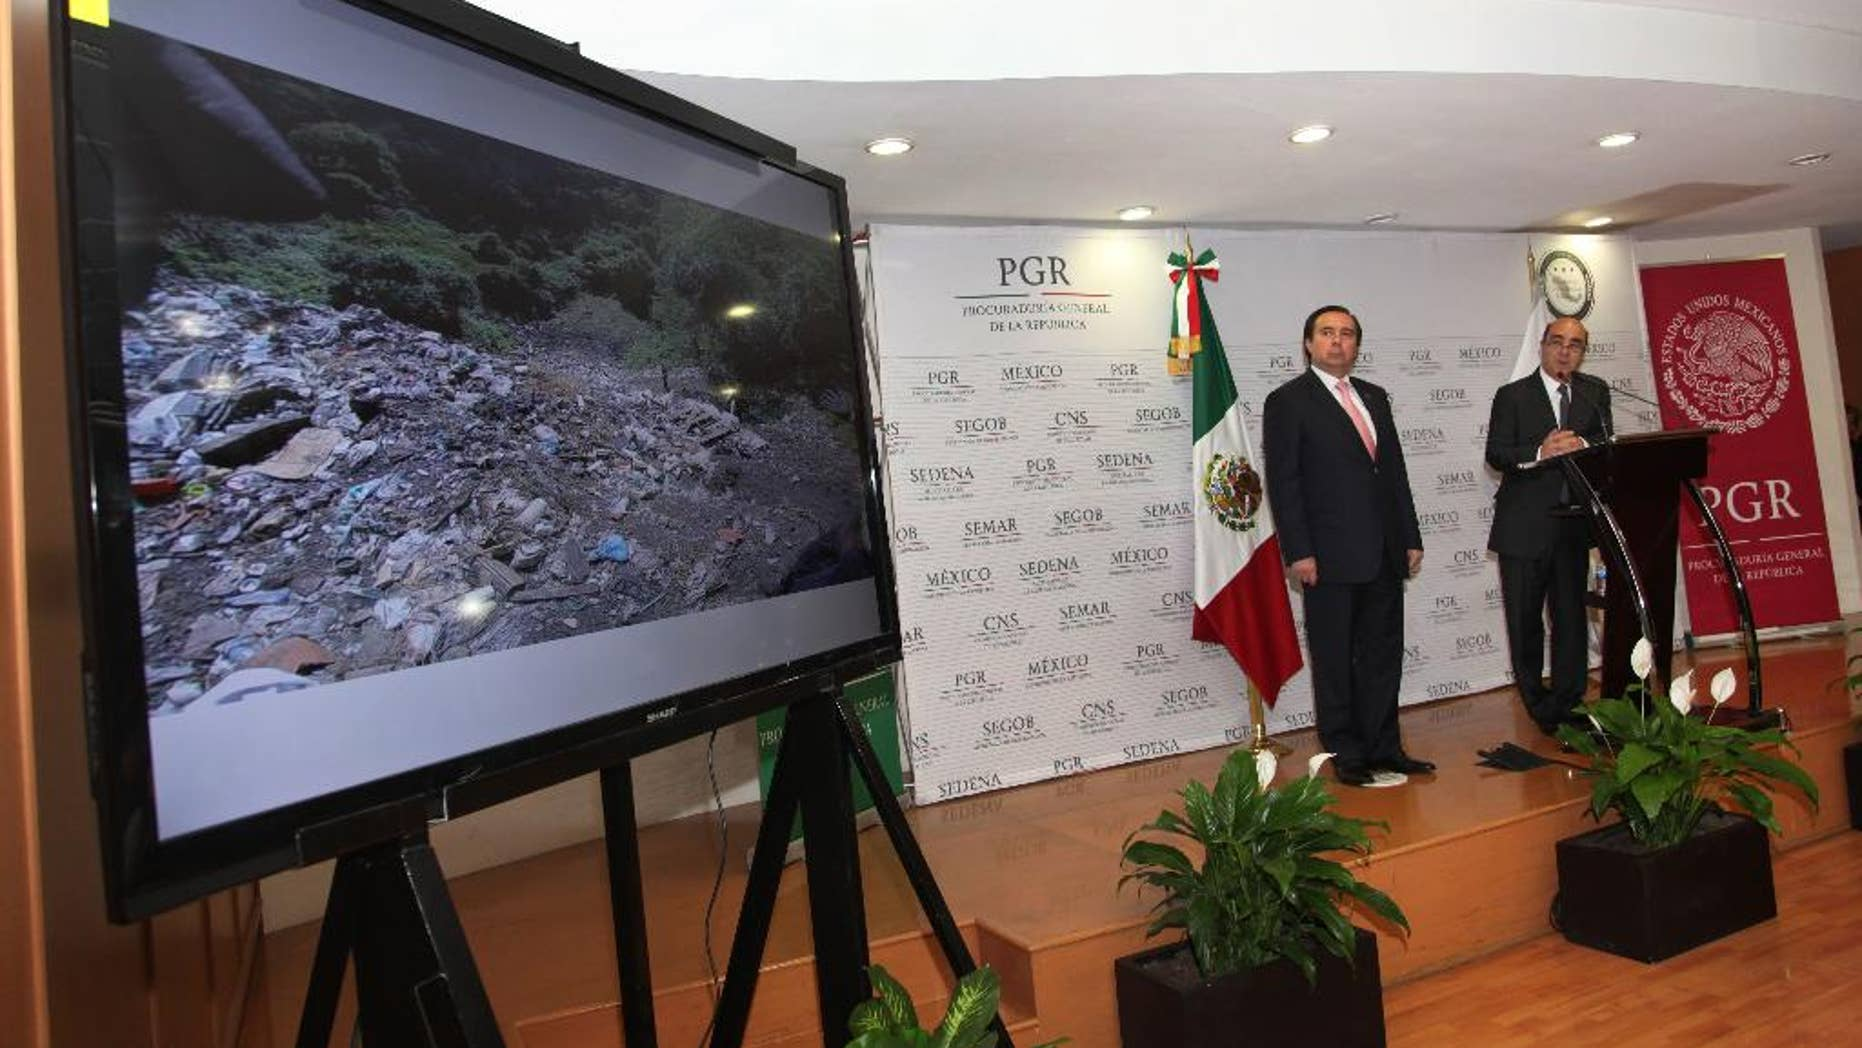 FILE - In this Dec. 7, 2014, file photo, Mexico's Attorney General, Jesus Murillo Karam, right, flanked by Tomas Zeron director of Mexico's Criminal Investigation Agency, speaks during a news conference in Mexico City. The Attorney General's Office has announced on Wednesday, Sept. 14, 2016, the resignation of Tomas Zeron, whose dismissal had been demanded by the families of 43 college students who disappeared two years ago. (AP Photo/Marco Ugarte, File)